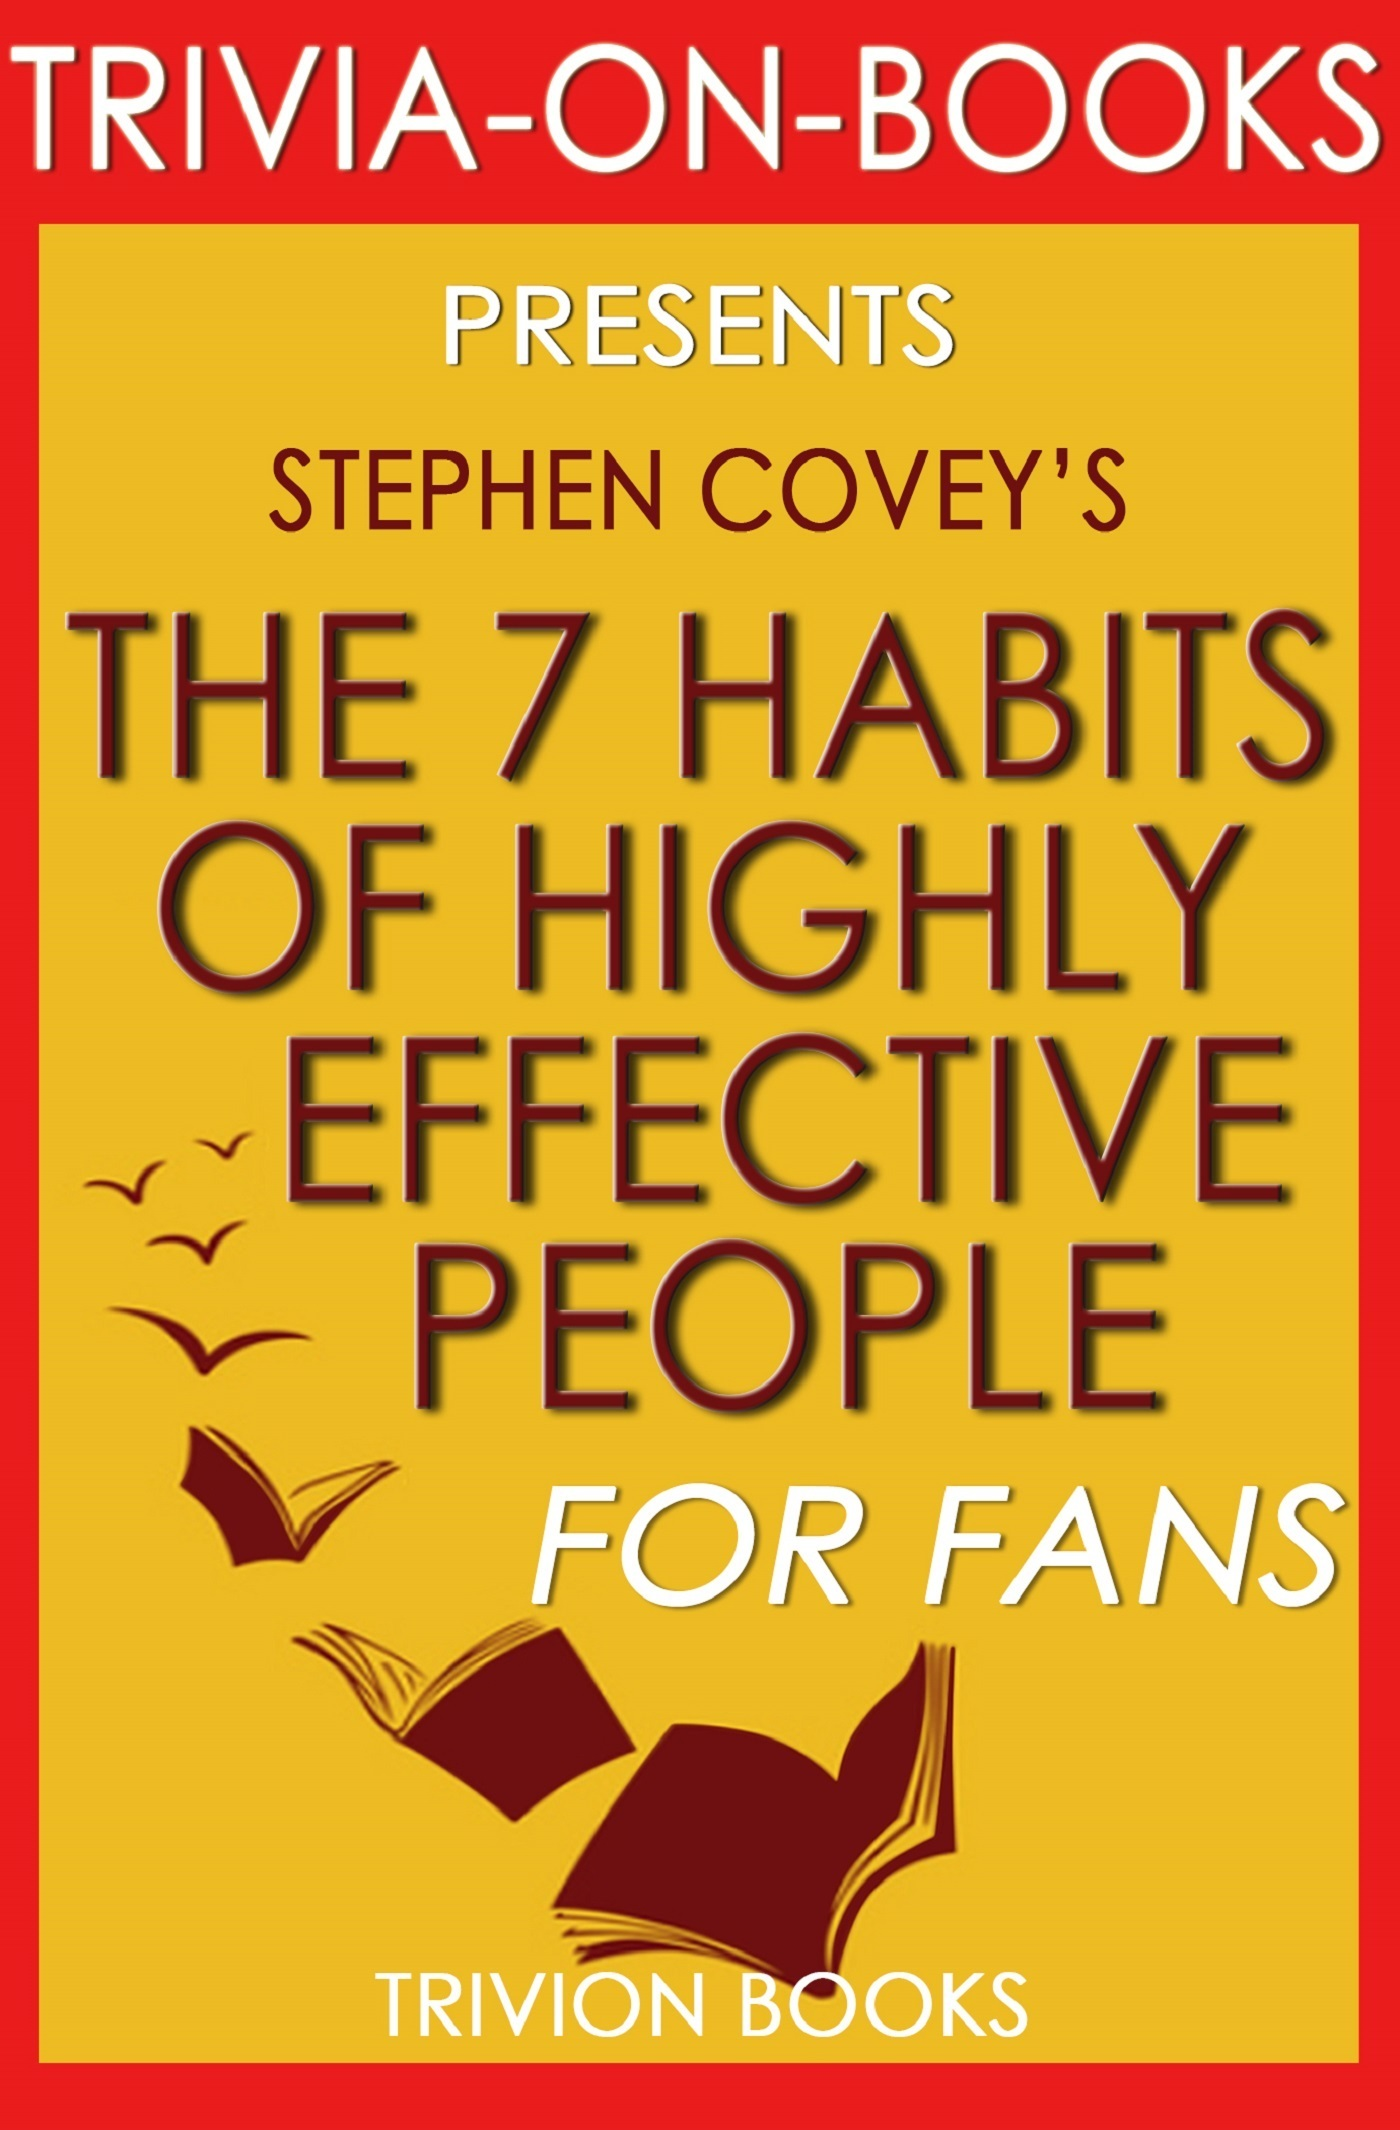 Summary of The 7 Habits of Highly Effective People by Stephen Covey | Trivia/Quiz for Fans